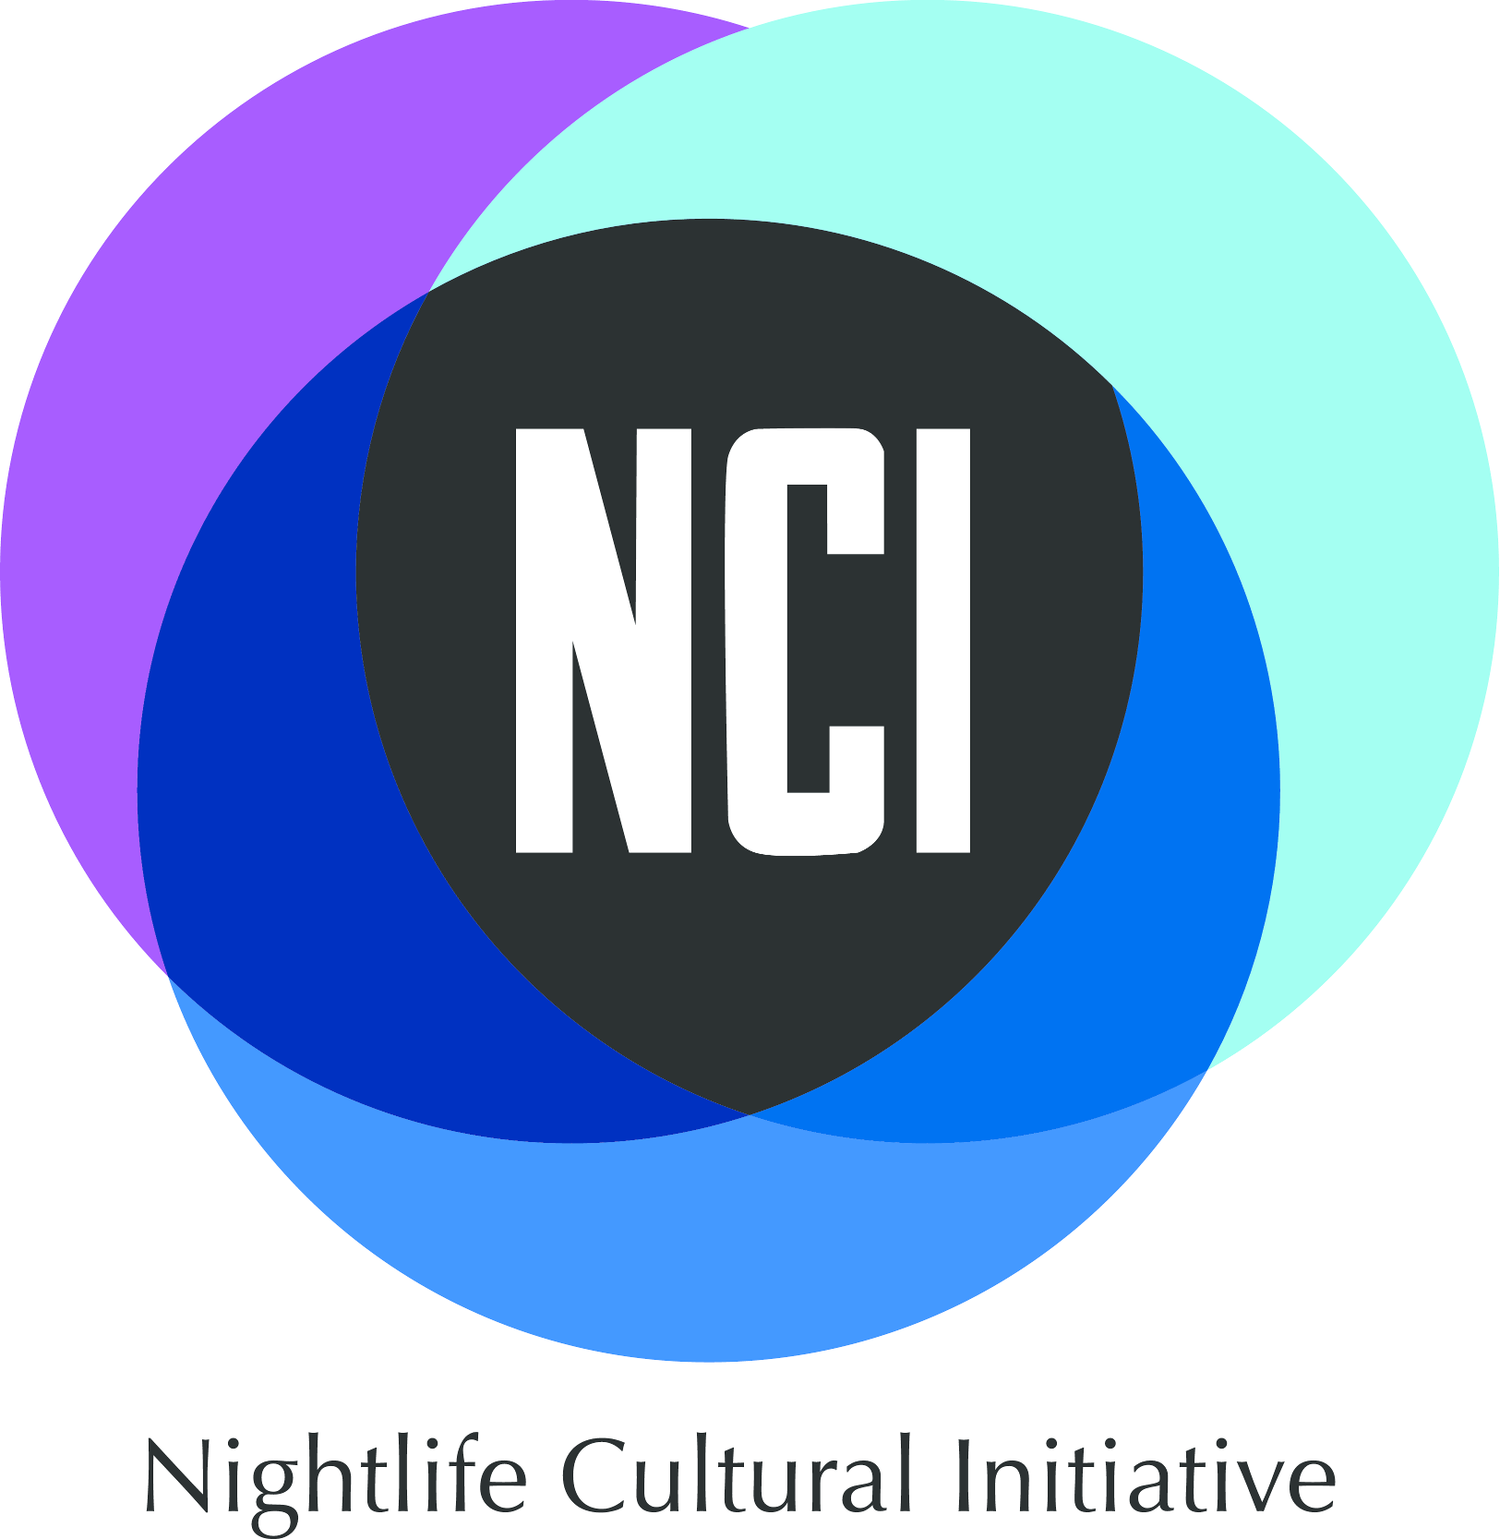 The Nightlife Cultural Initiative